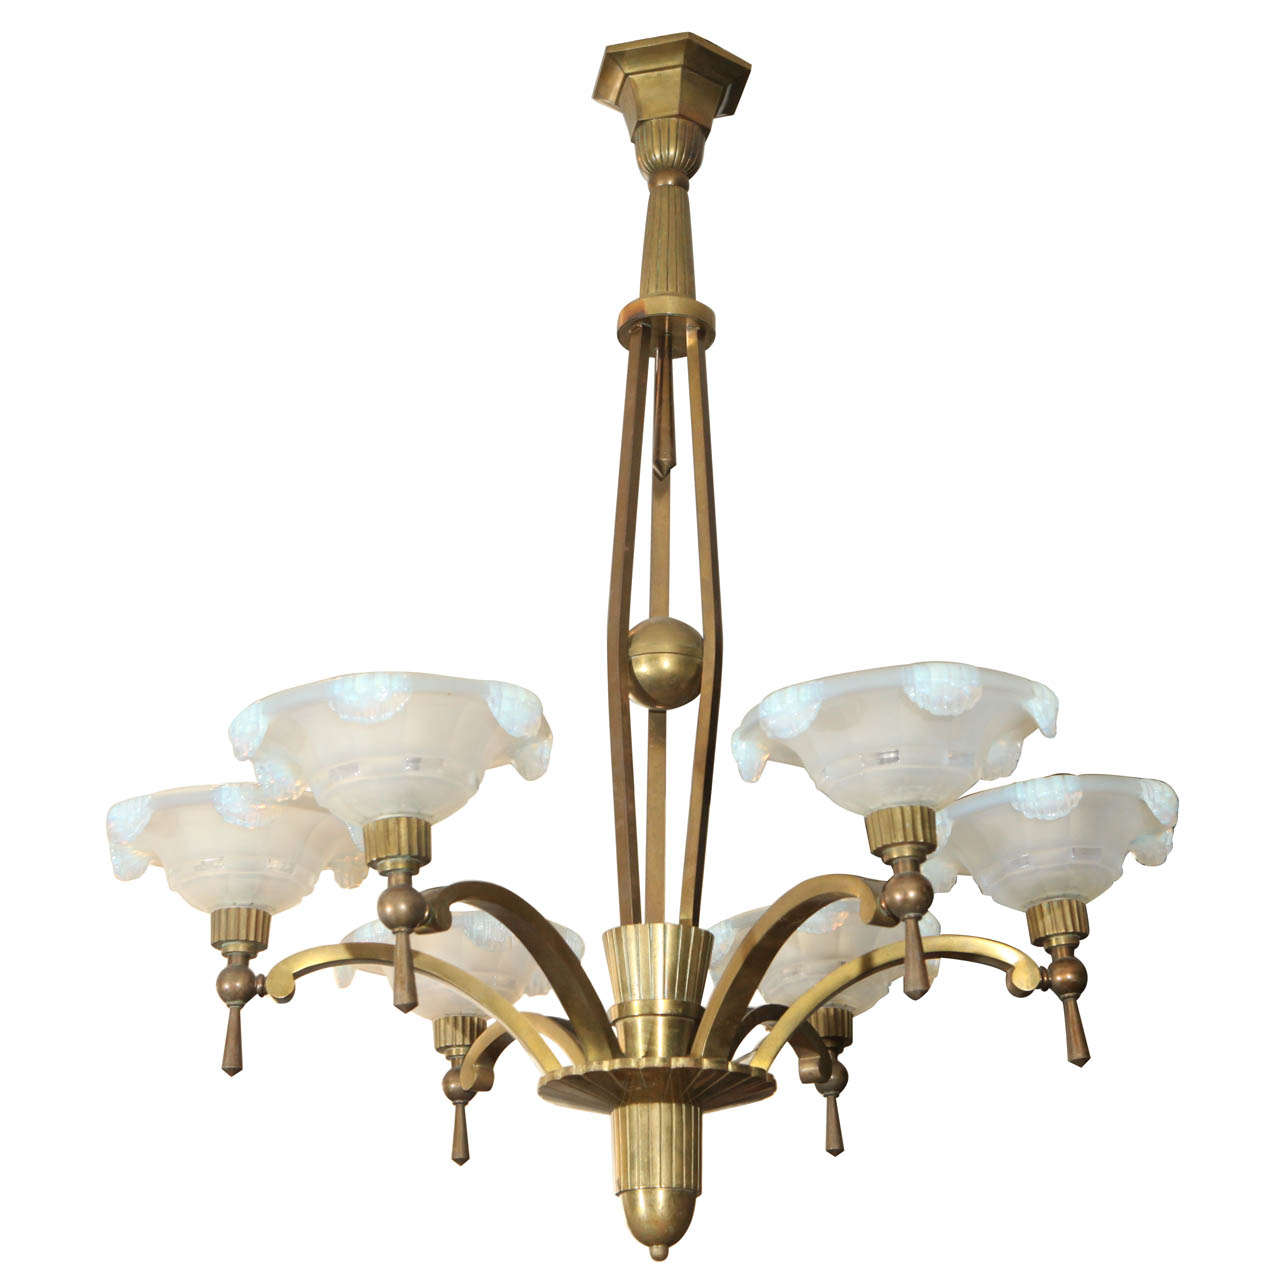 Chandelier with Waterfall Opaline Shades